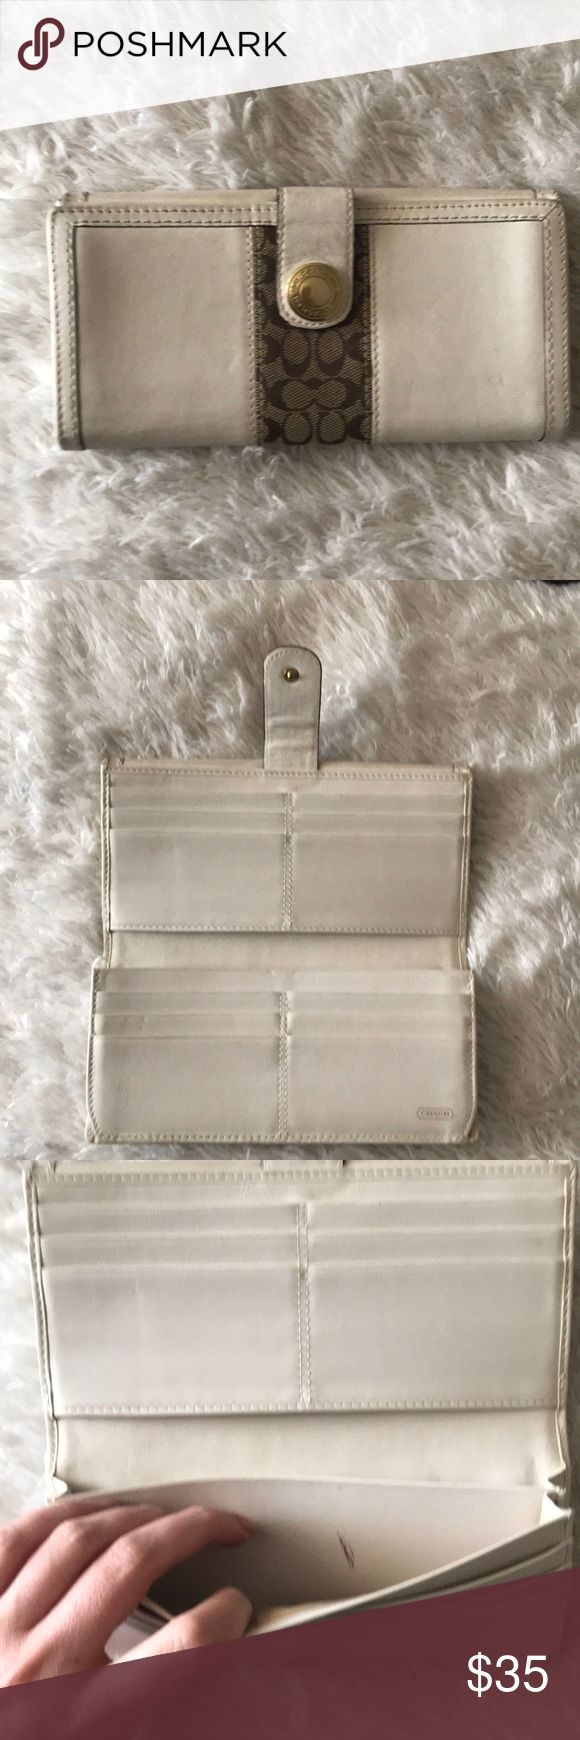 Coach leather wallet White leather. Needs cleaning. Nail polish mark on inside Coach Bags Wallets